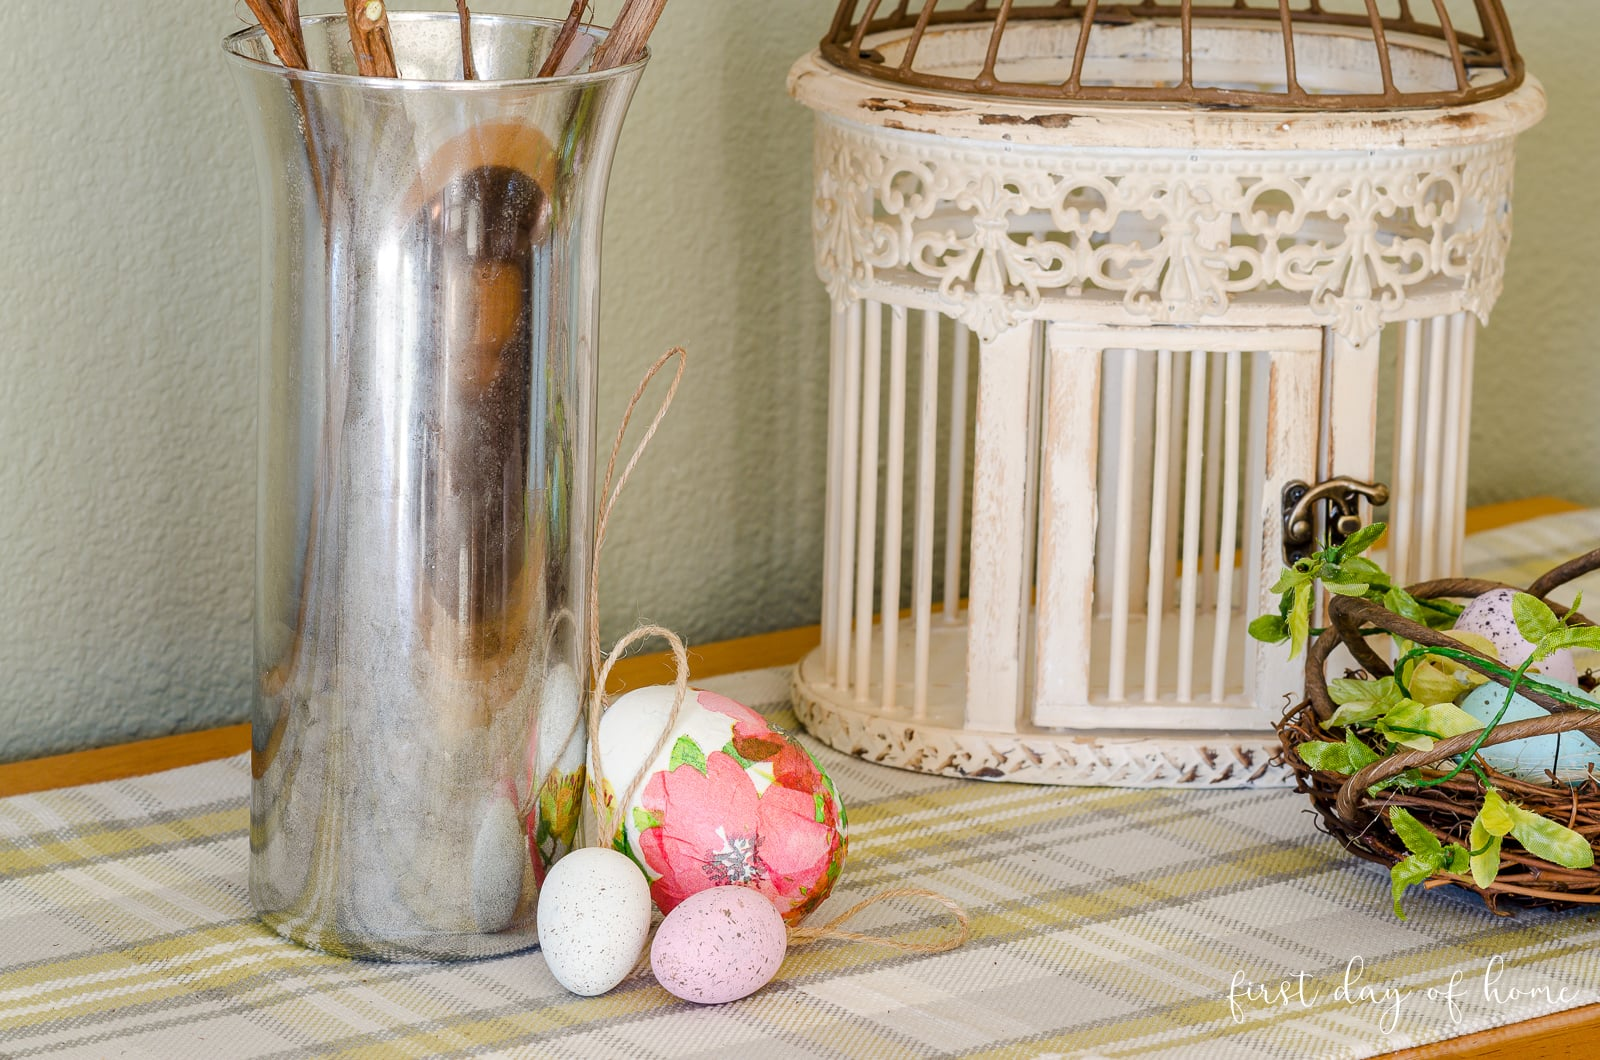 Decoupage eggs and painted eggs sitting by DIY mercury glass